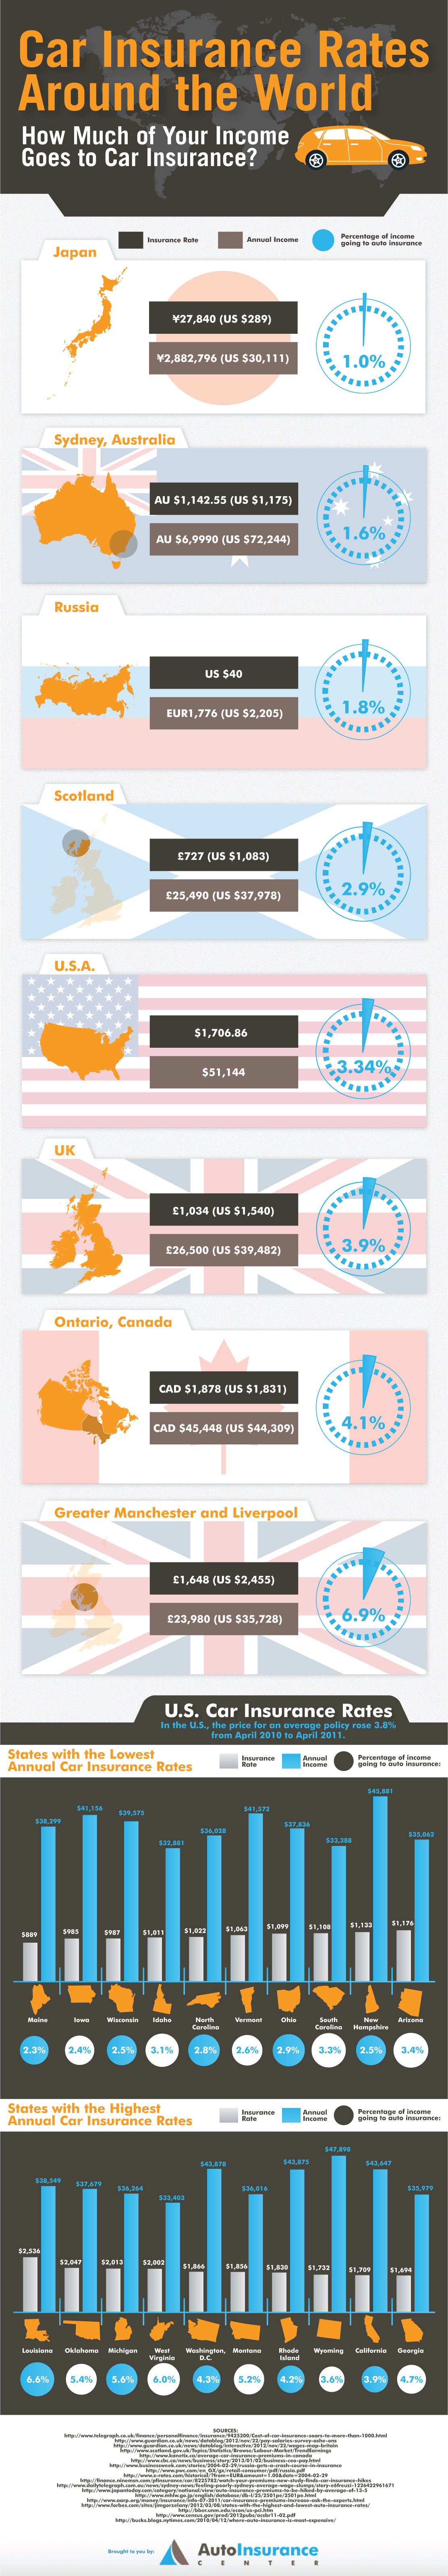 World's Most Popular Countries and its Car Insurance Rates